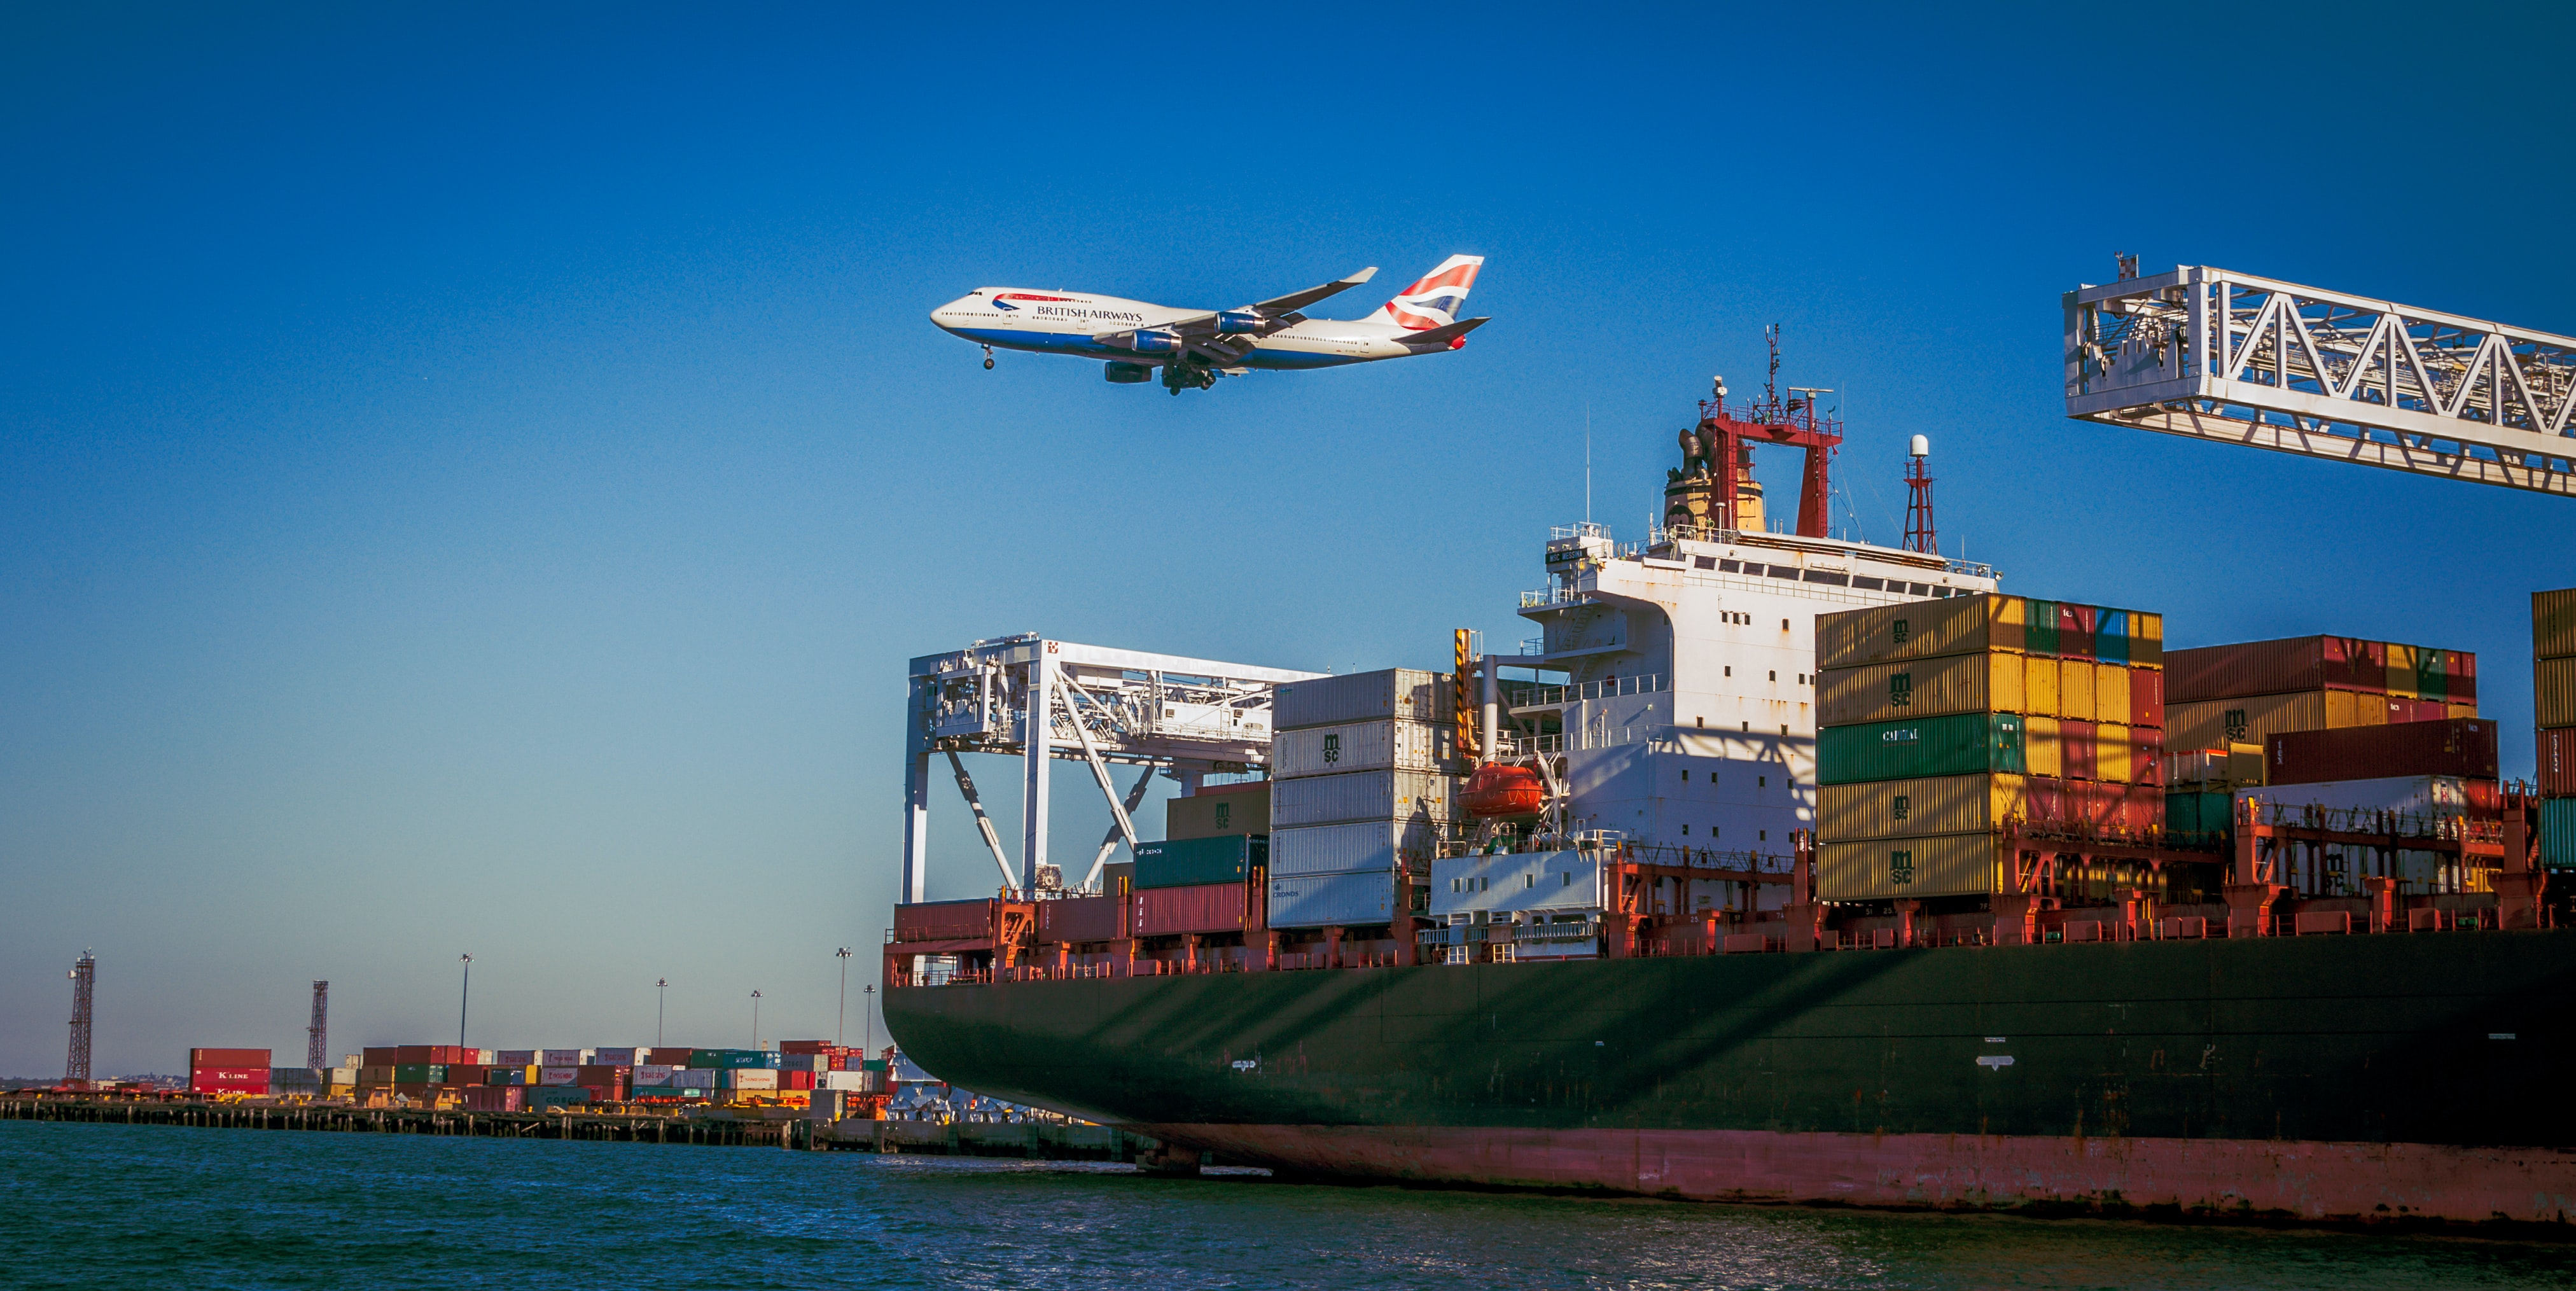 airplane on mid air passing by above cargo ship